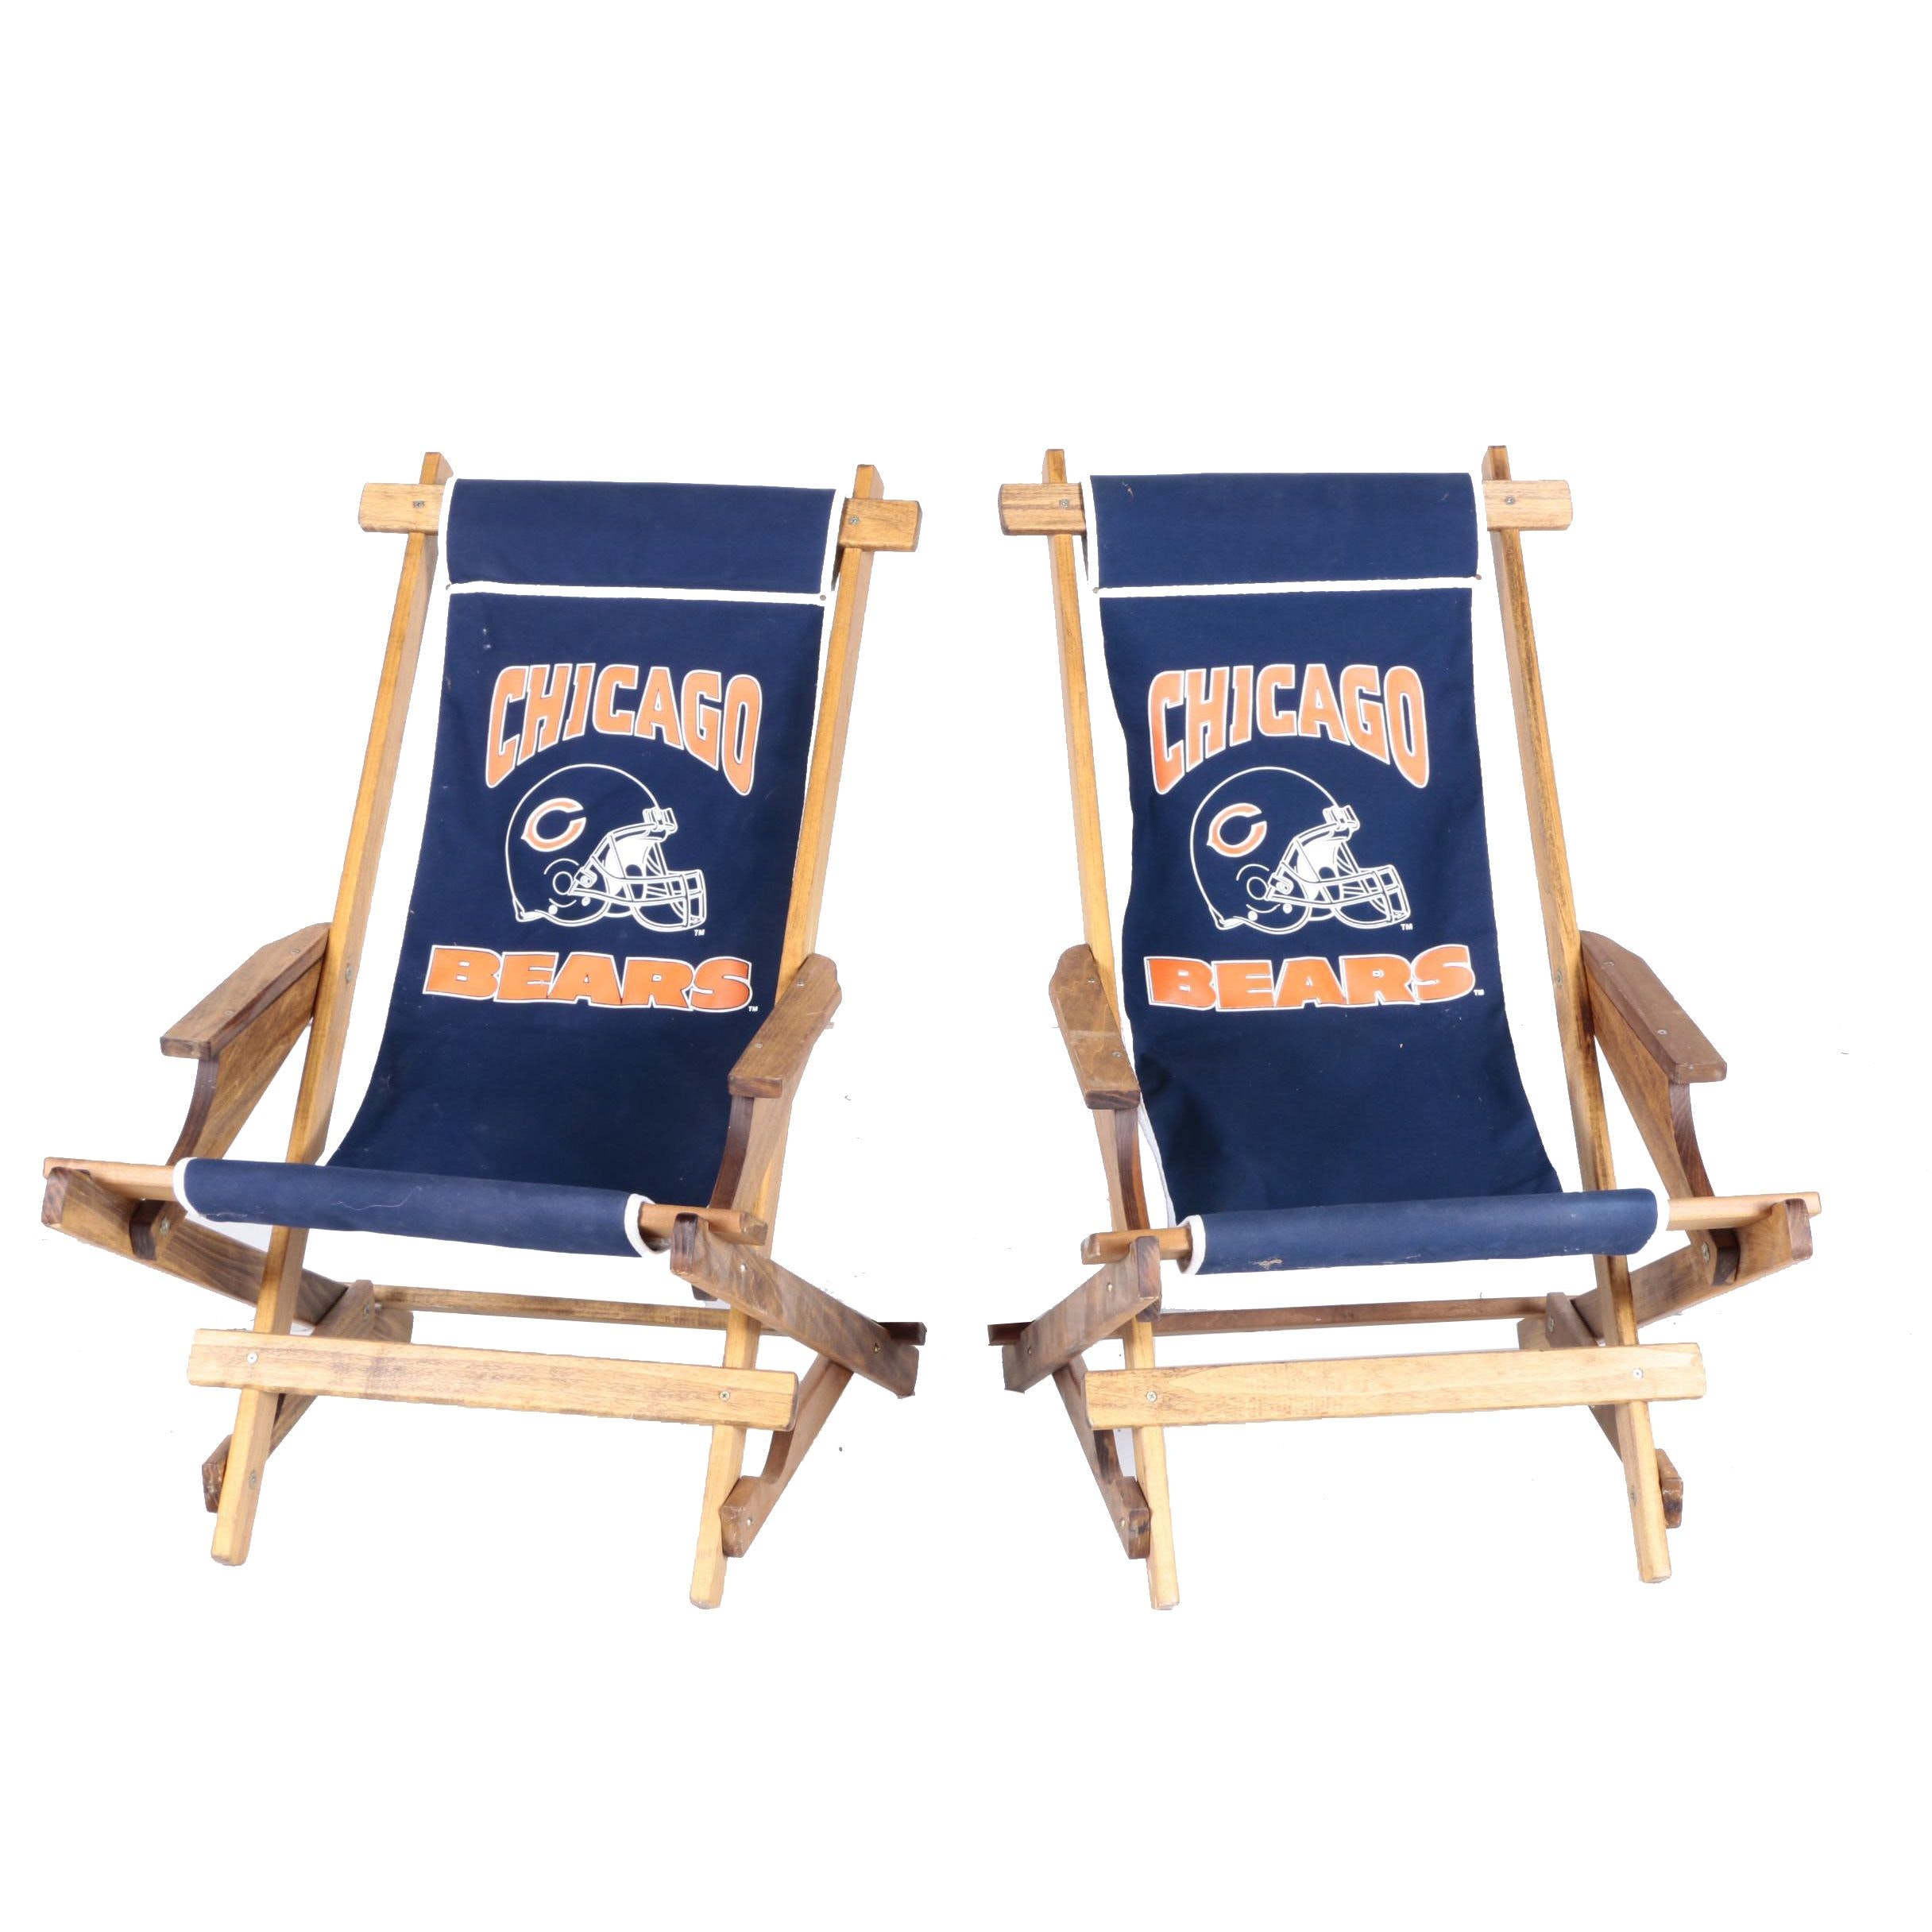 Pair of Chicago Bears Lounge Chairs